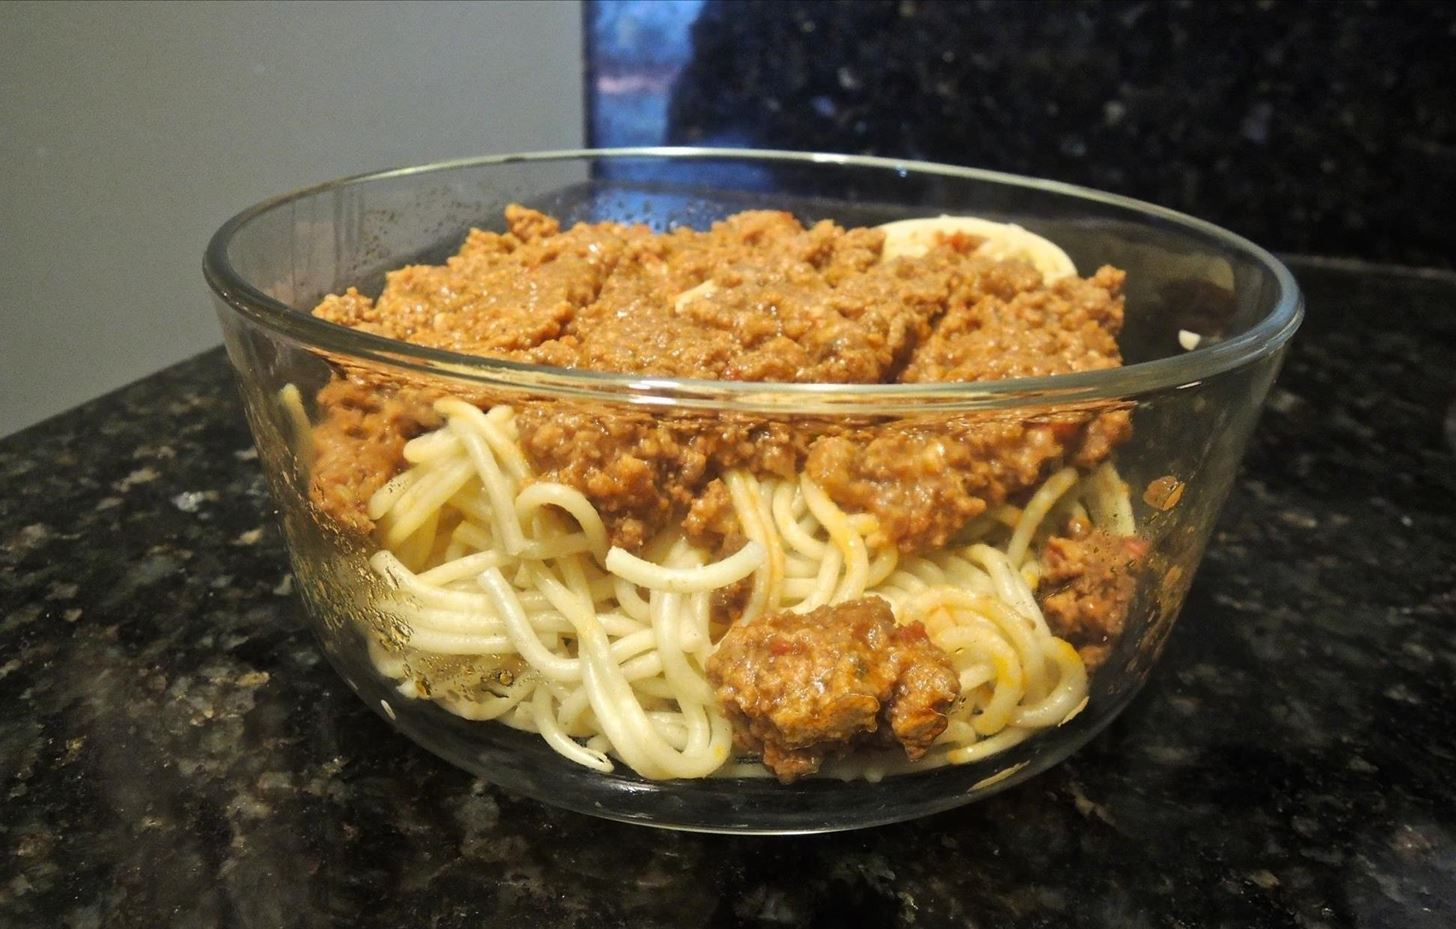 Most Gl Dishes Are Okay For Microwave Use Image By Neil Gonzalez Food Hacks Daily